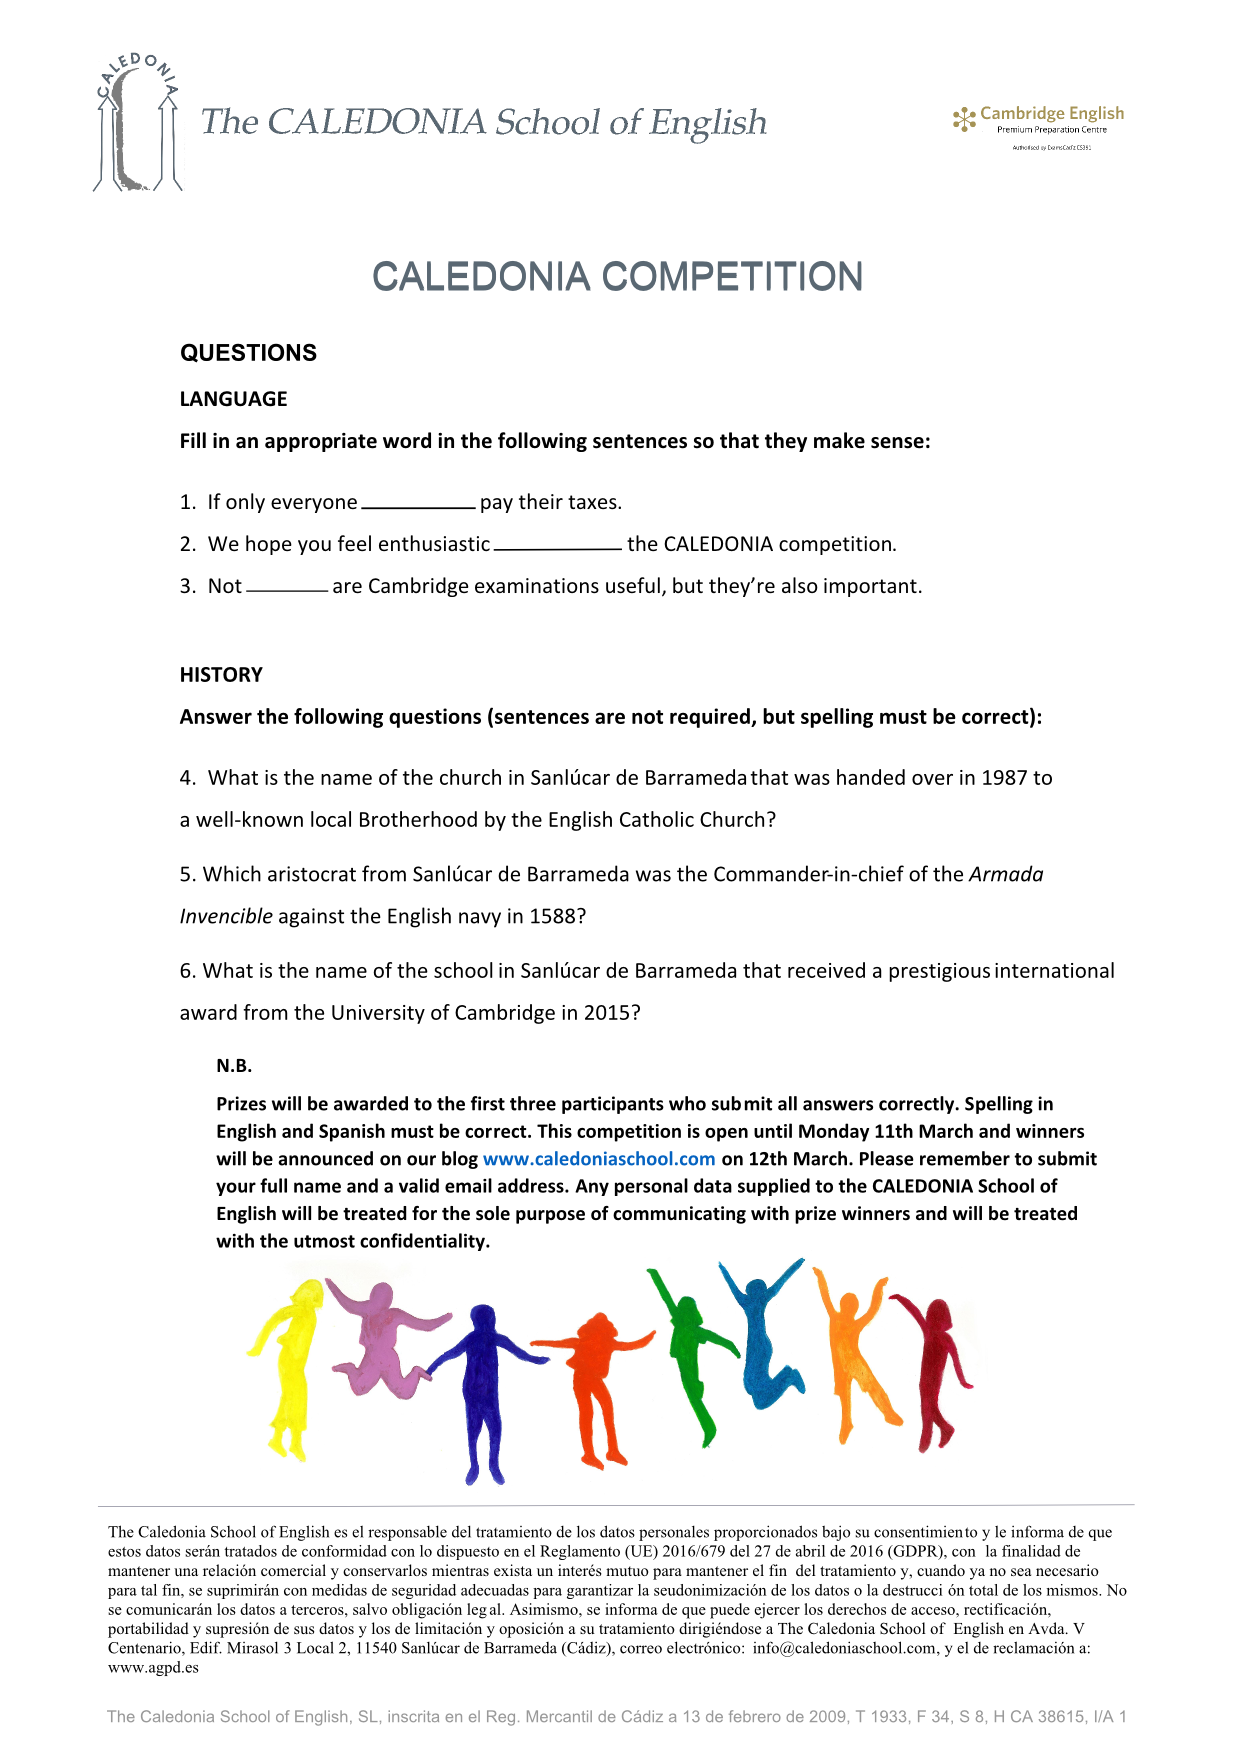 caledonia competition questions